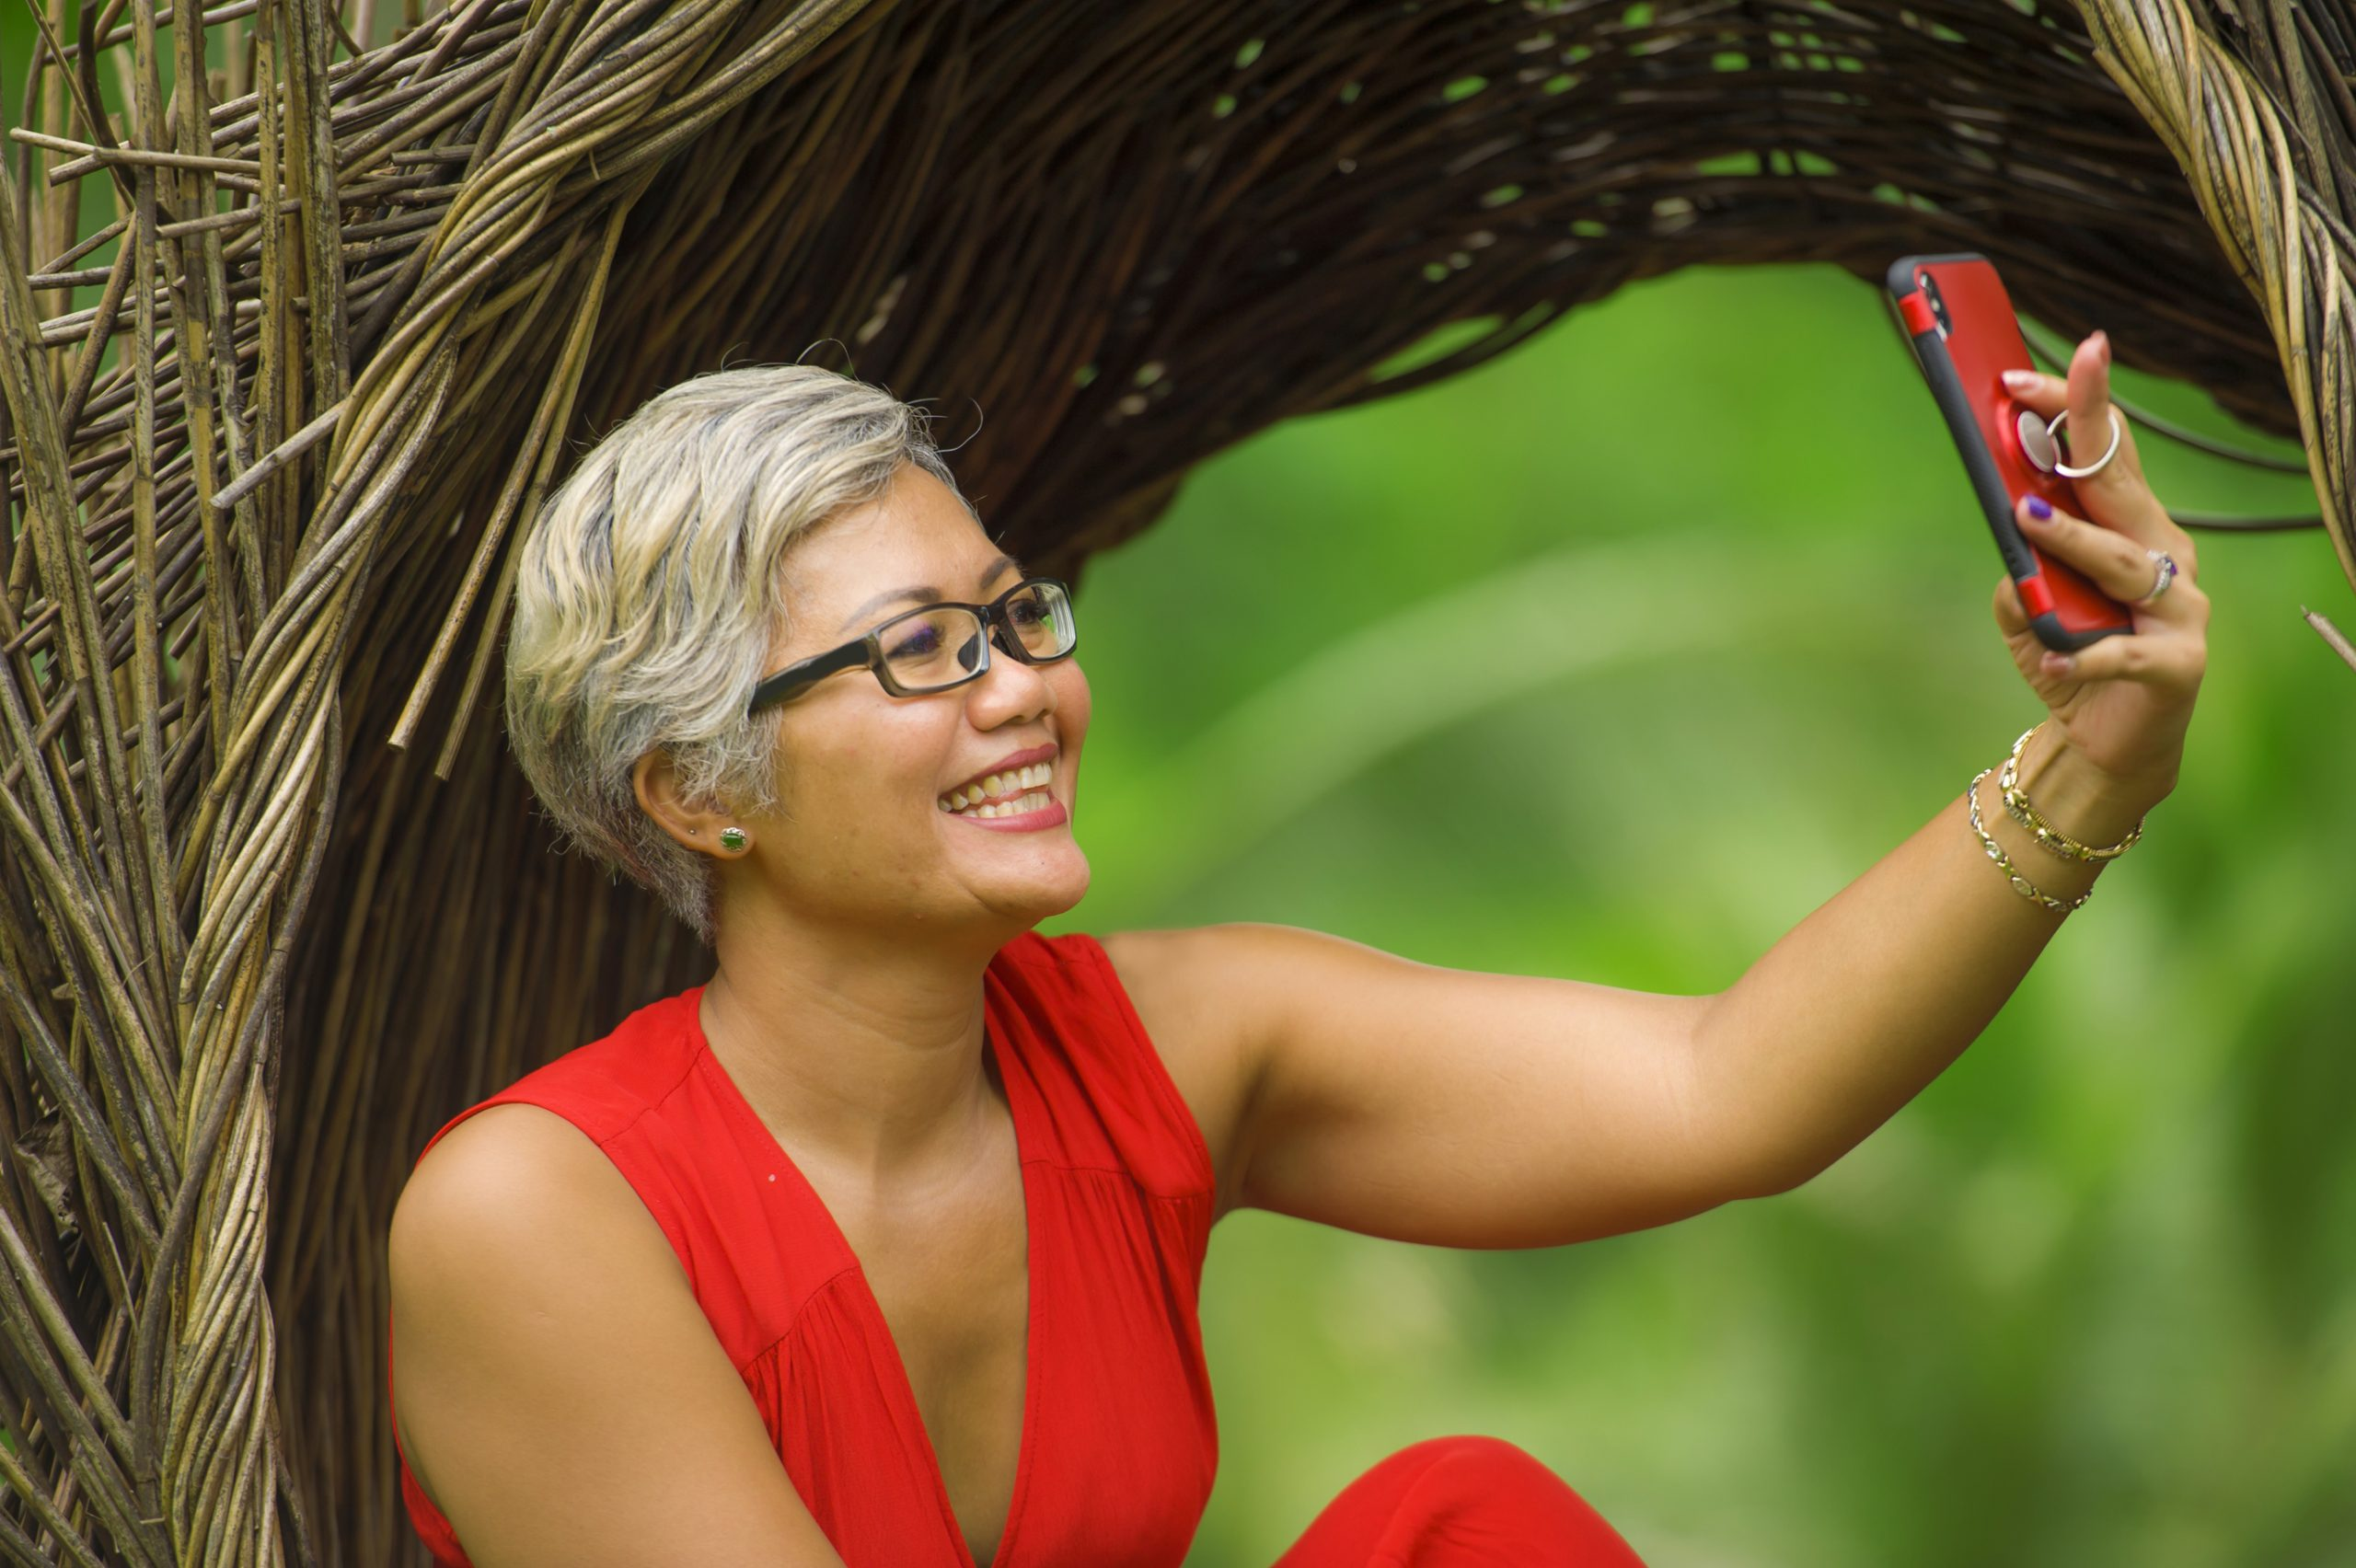 Thinking of Going Gray? Here are 3 Ways to Make Your Gray Hair Look FABULOUS